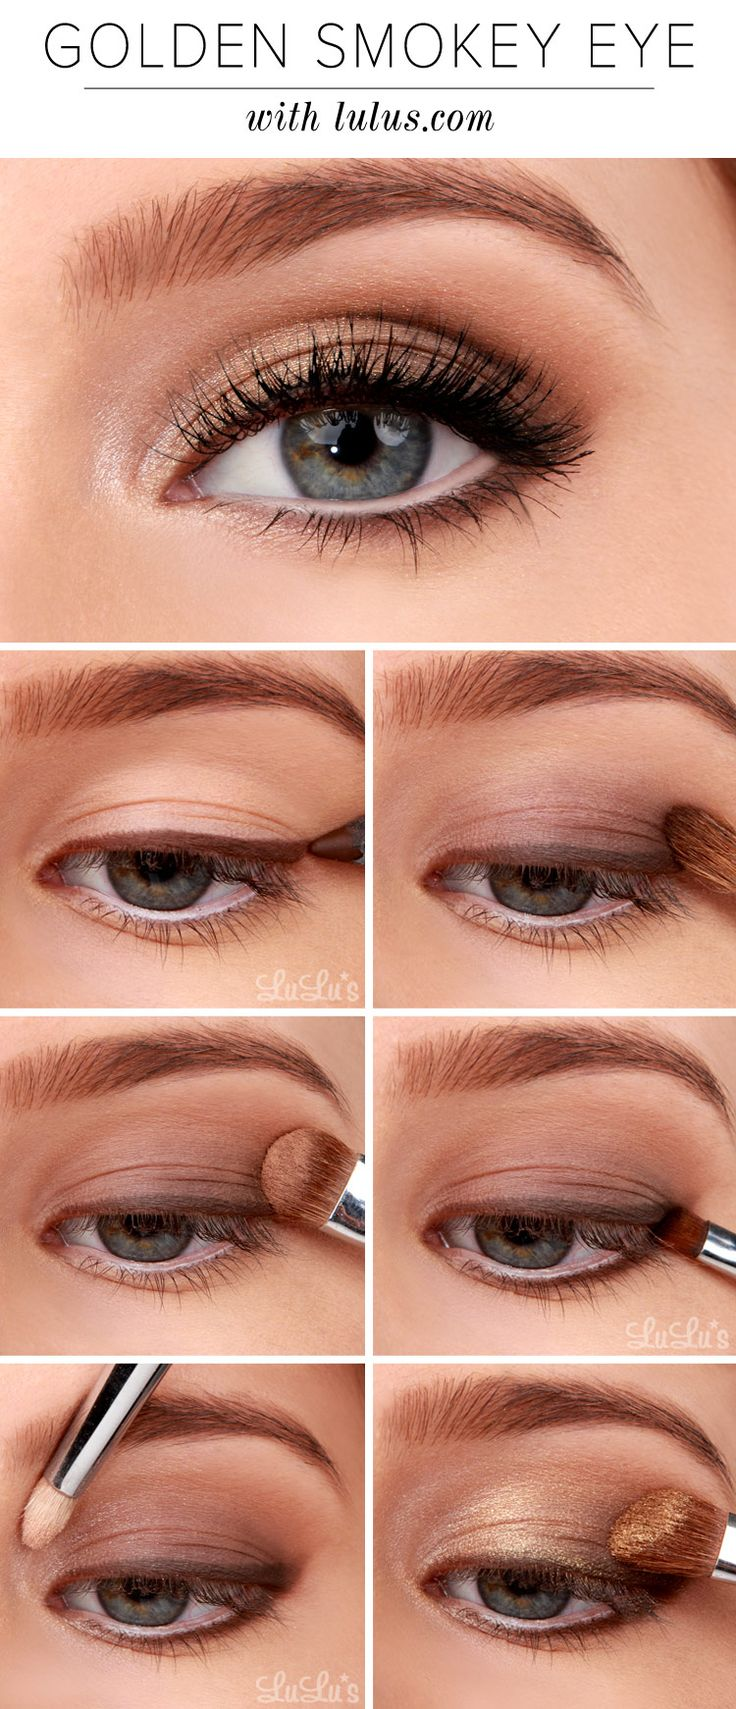 www.pinterest.com... Golden Smokey Eye Tutorial #gold #smokeyeye #makeup